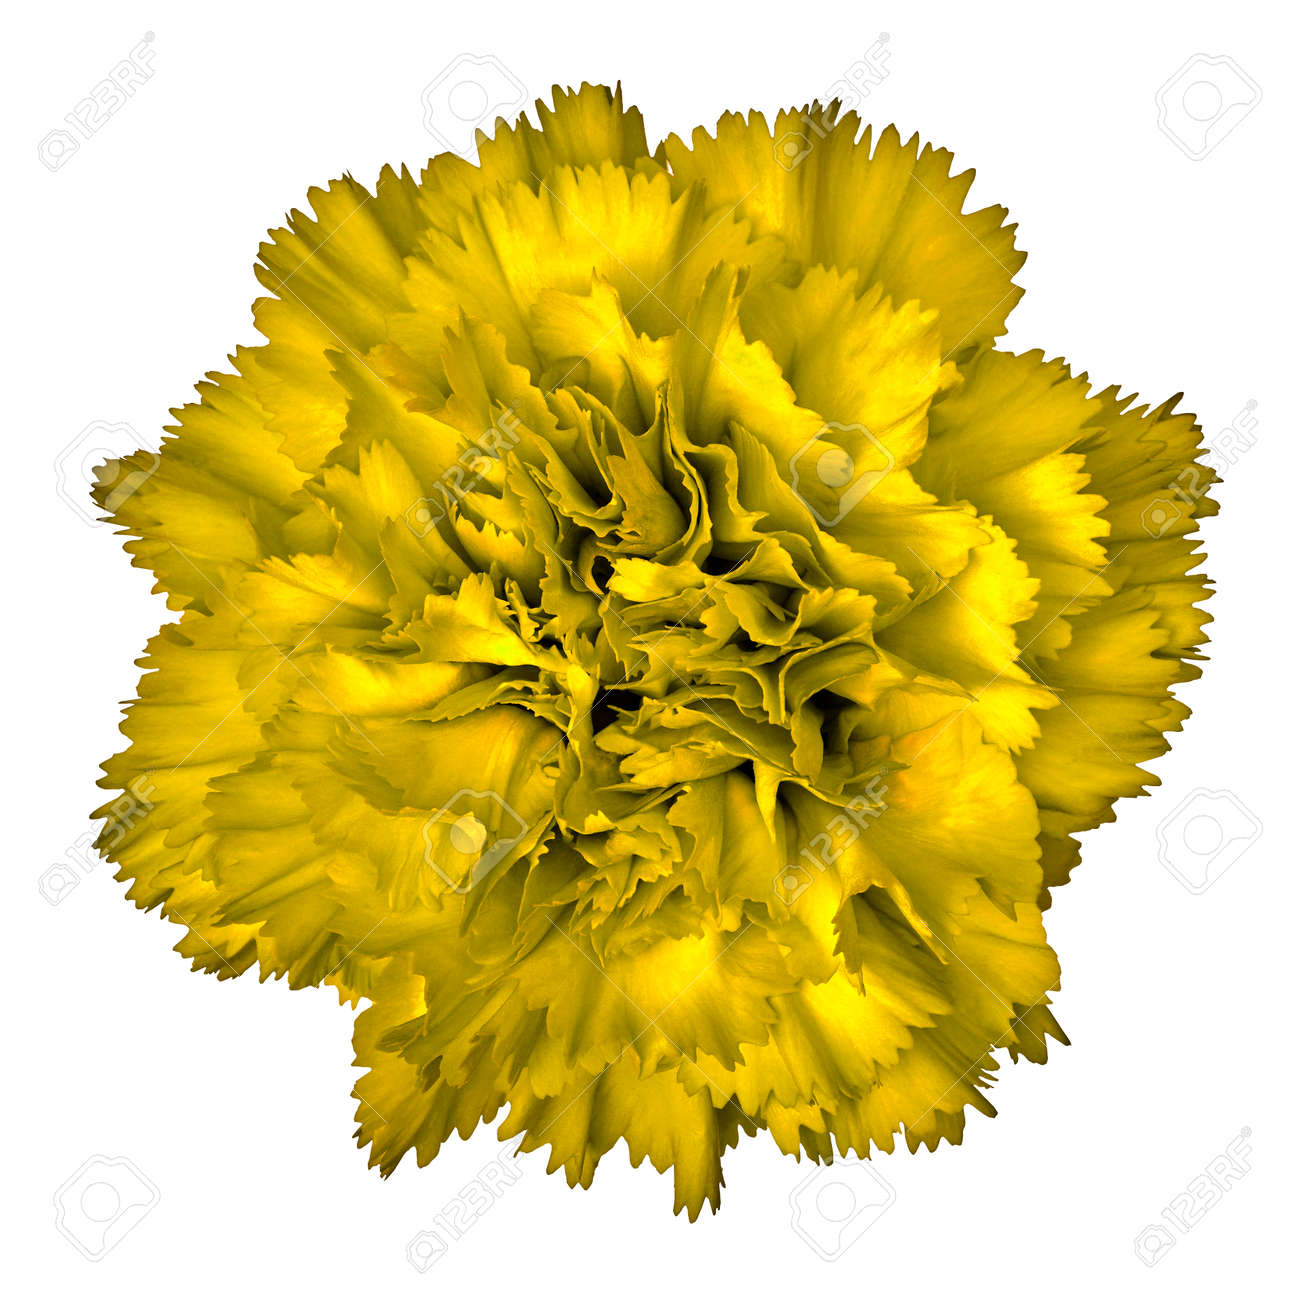 Yellow Carnation Flower Isolated On White Background Close Up